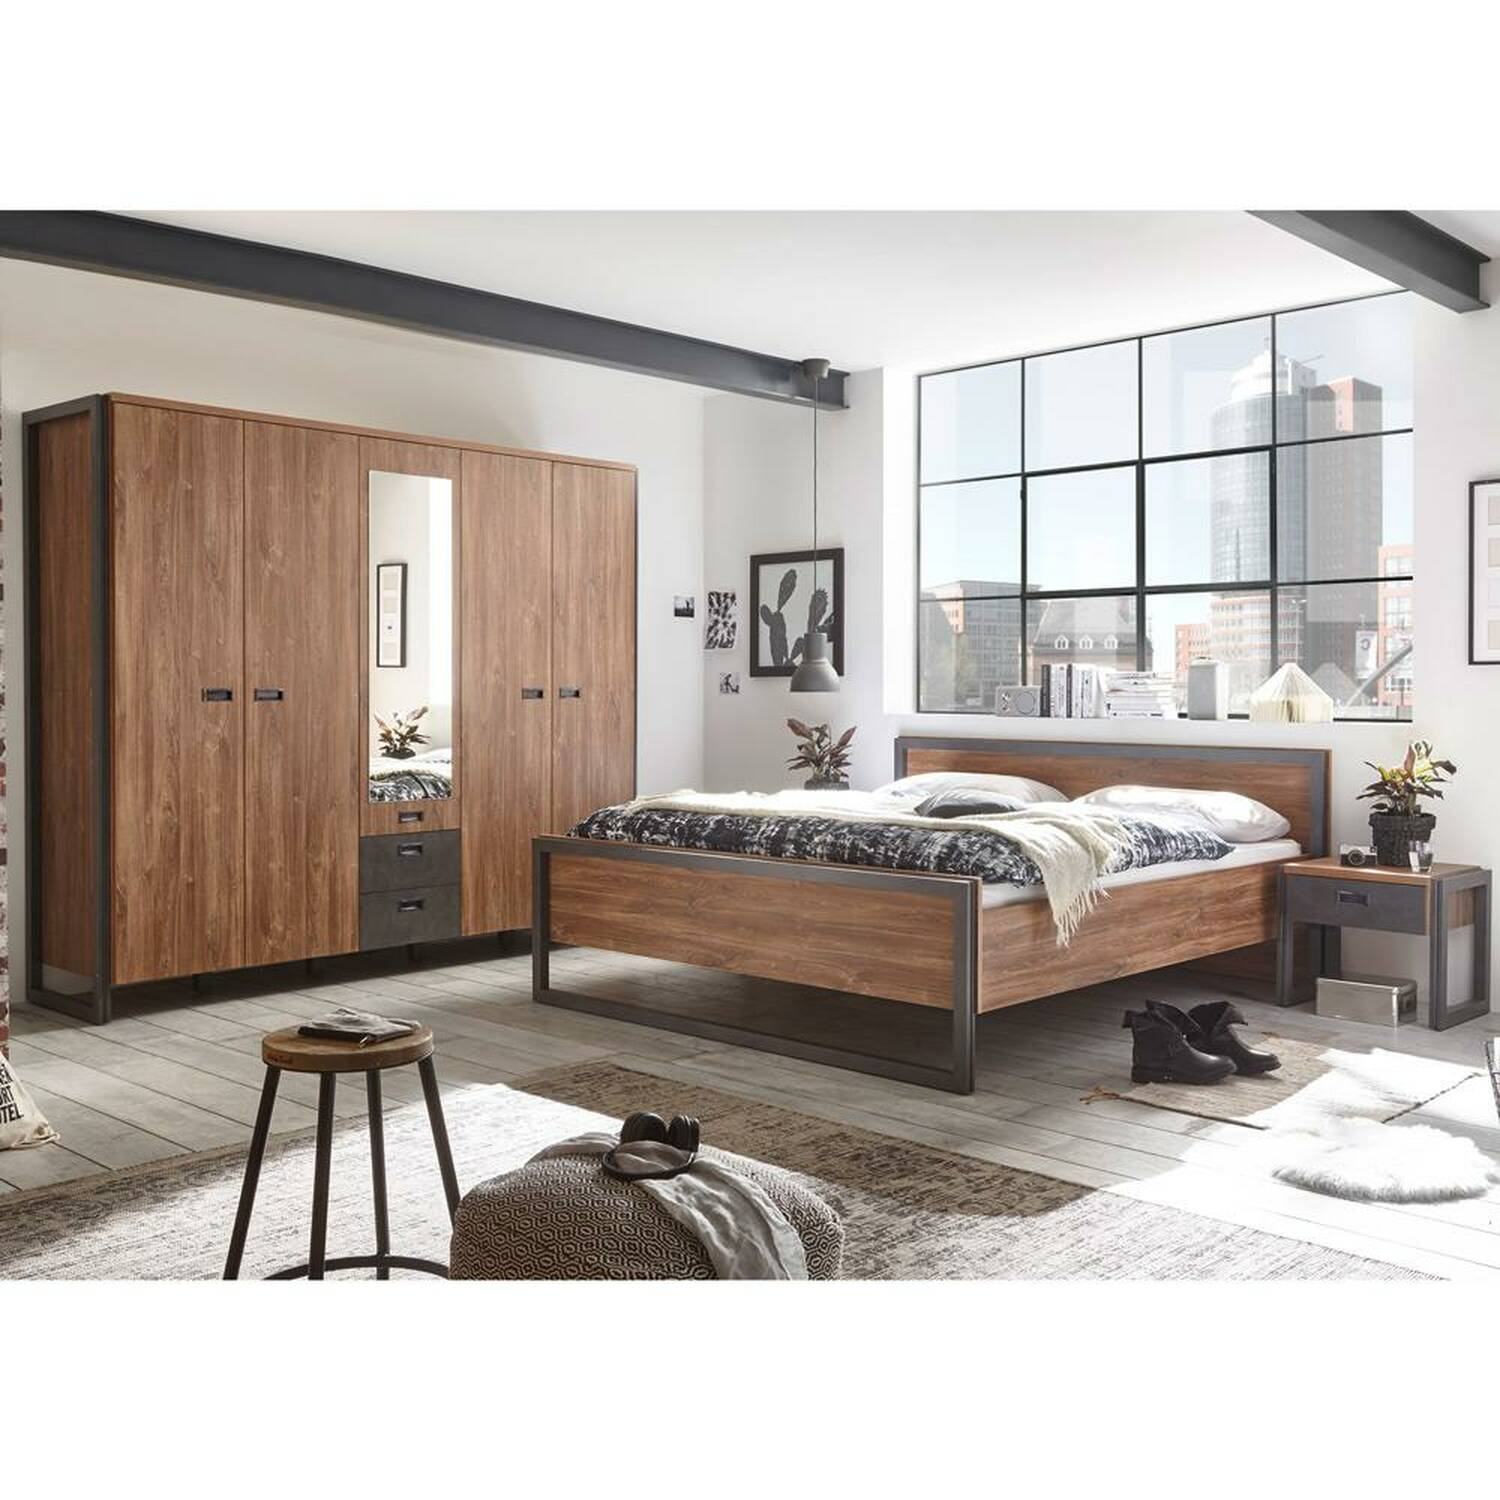 Schlafzimmer Set Anthrazit Schlafzimmer Dallas 61 Im Industrial Stil Komplett Set Dekor Stirling Oak Nb Und Matera Anthrazit B H T Ca 393x202x60 209cm